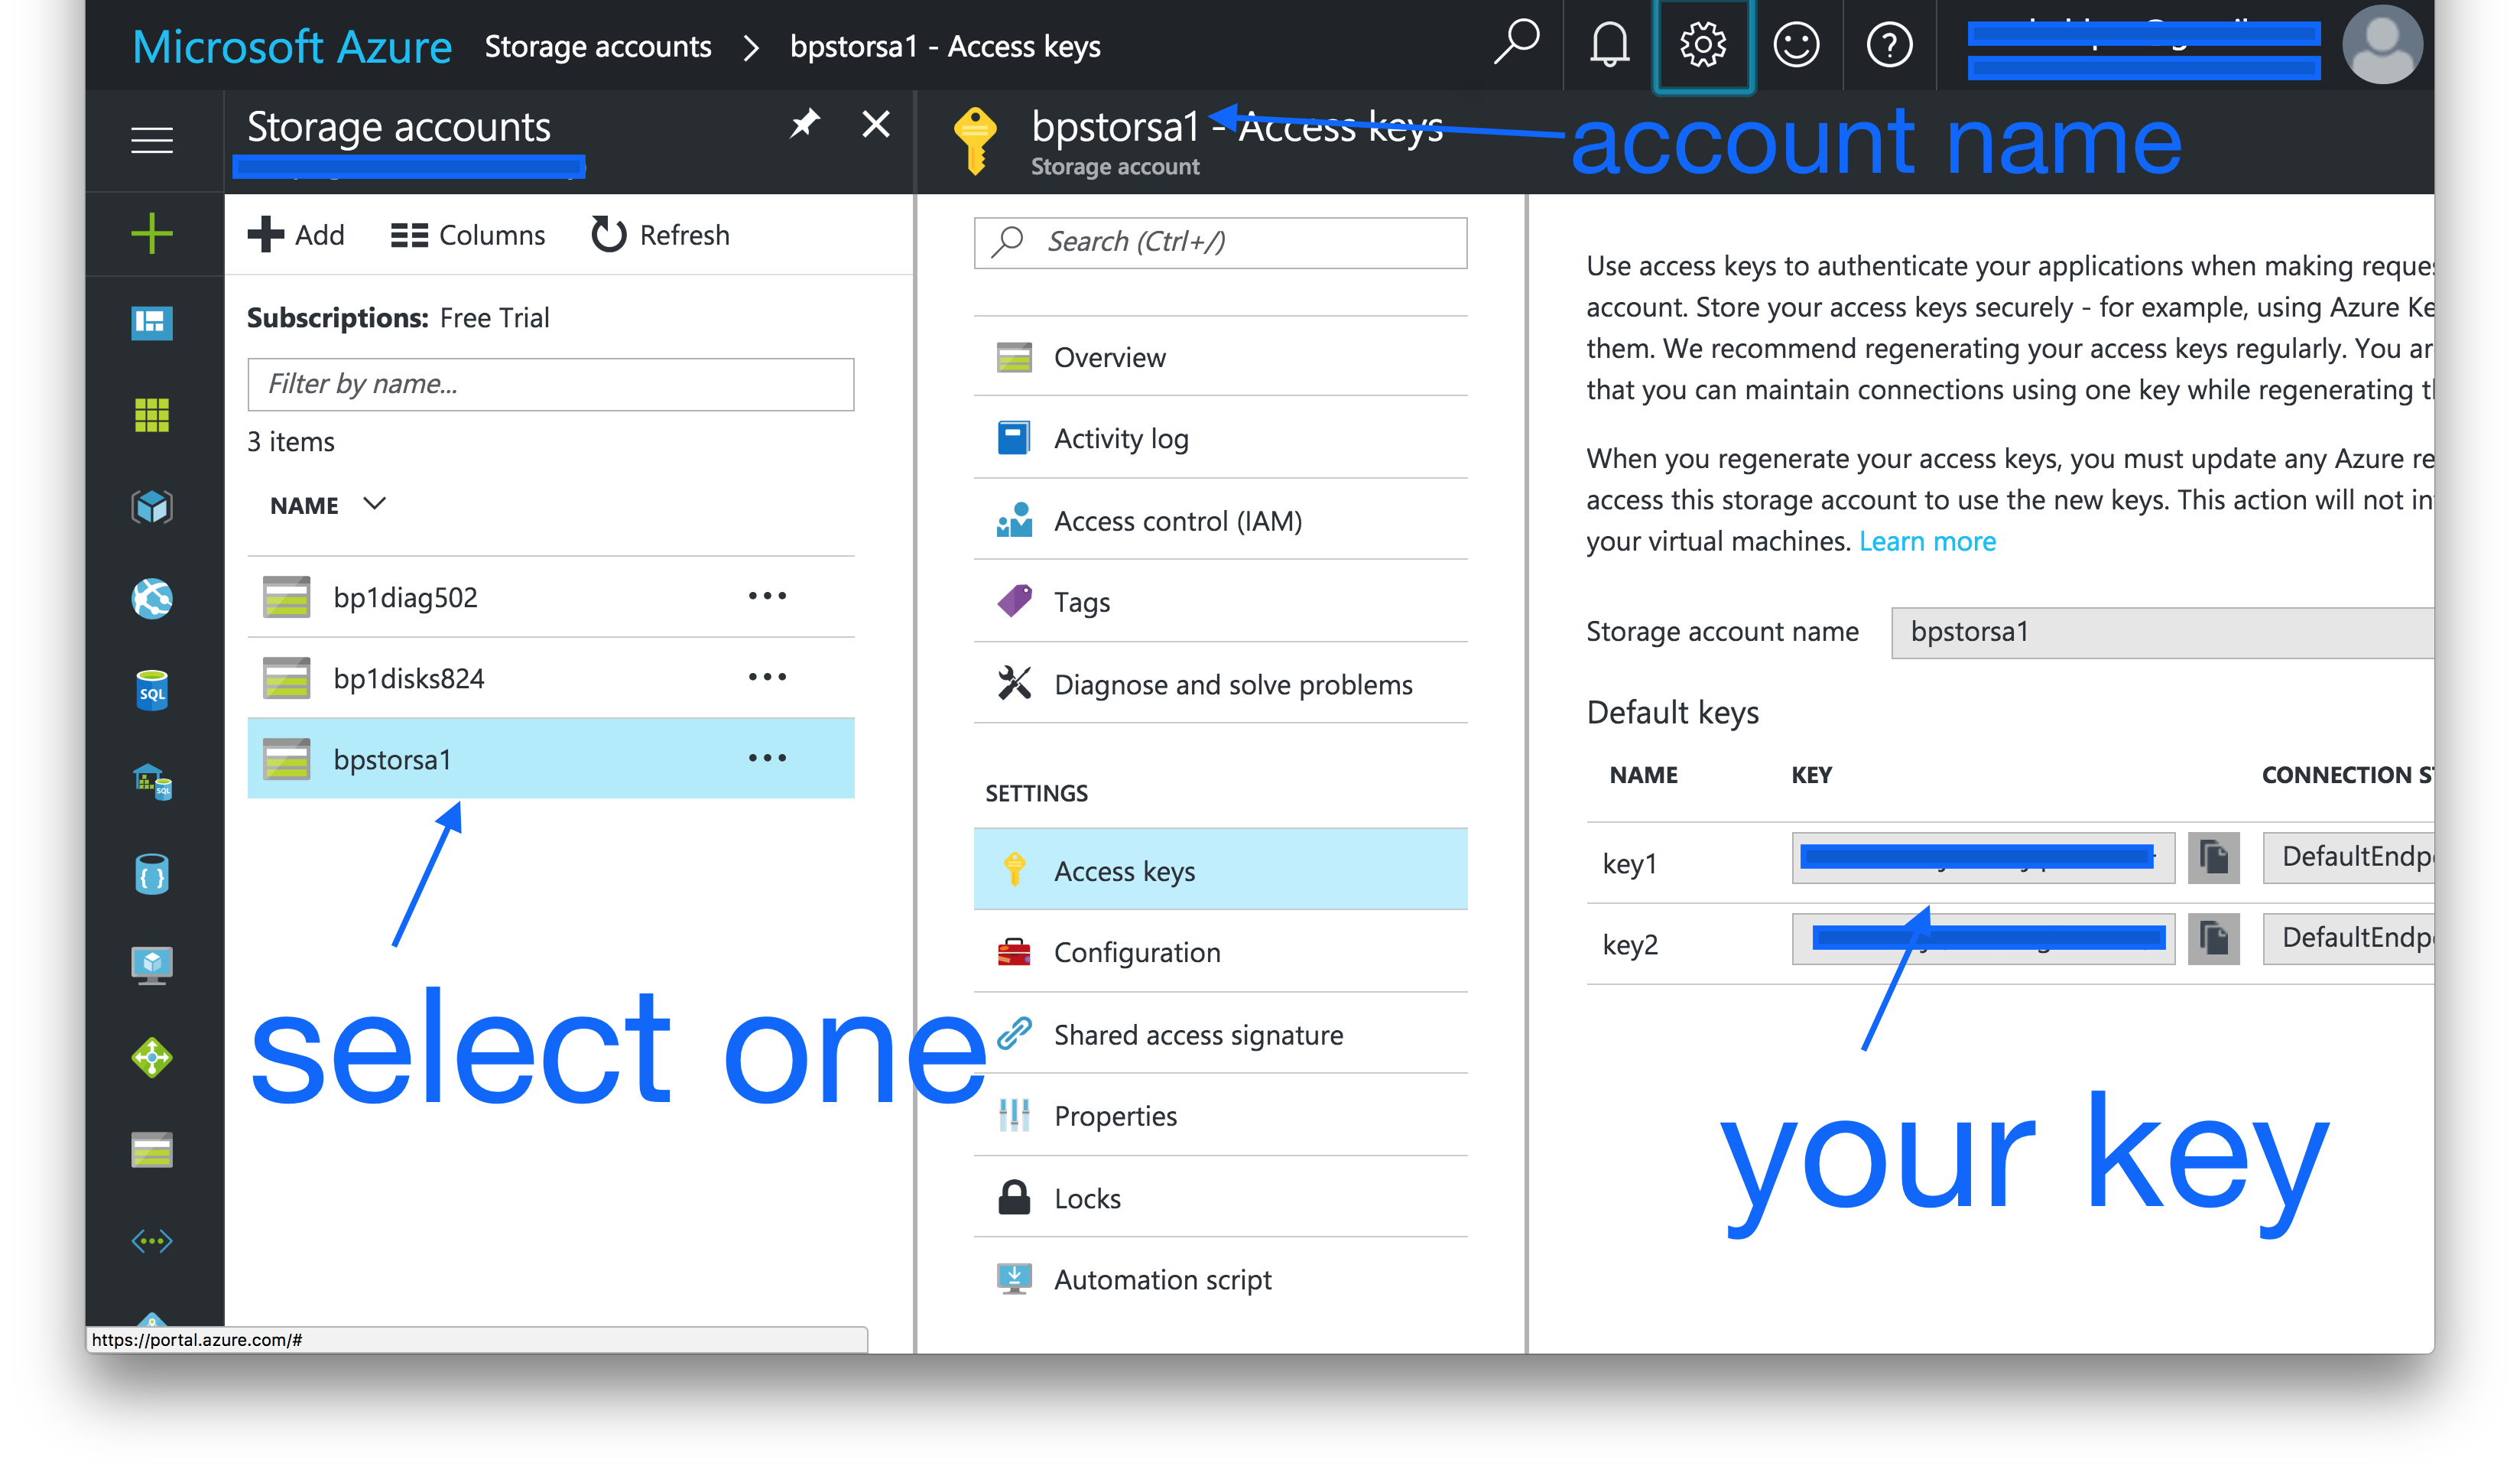 Retrieving account name and account key from Azure Storage